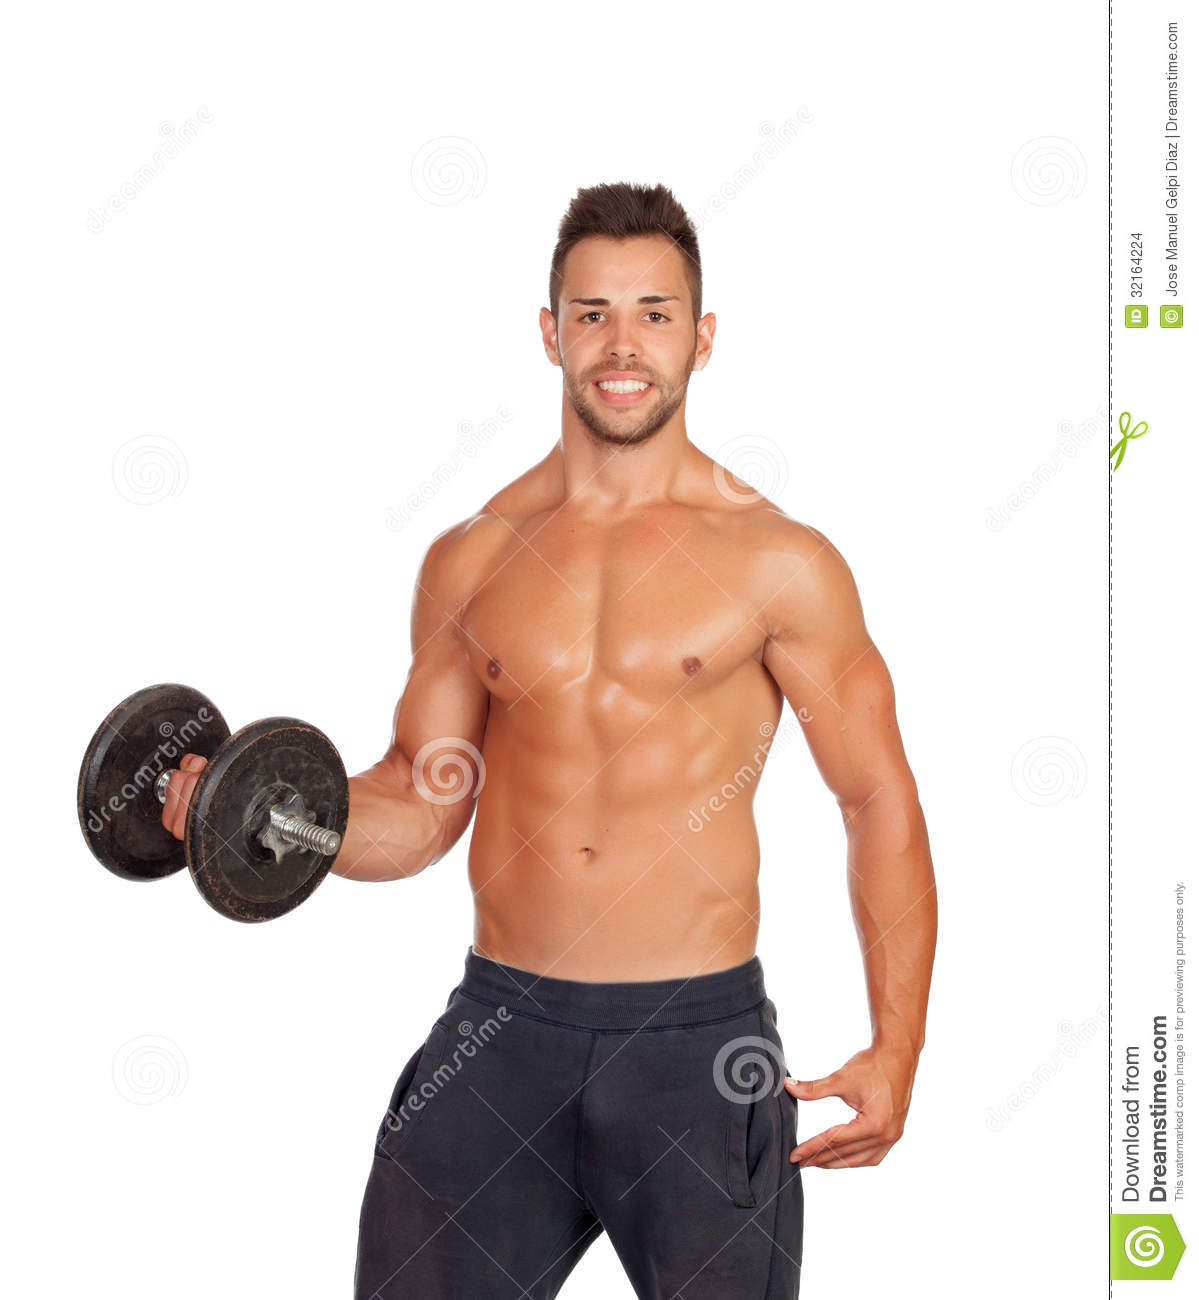 Muscled Guy Lifting Weights Stock Photo - Image: 32164224